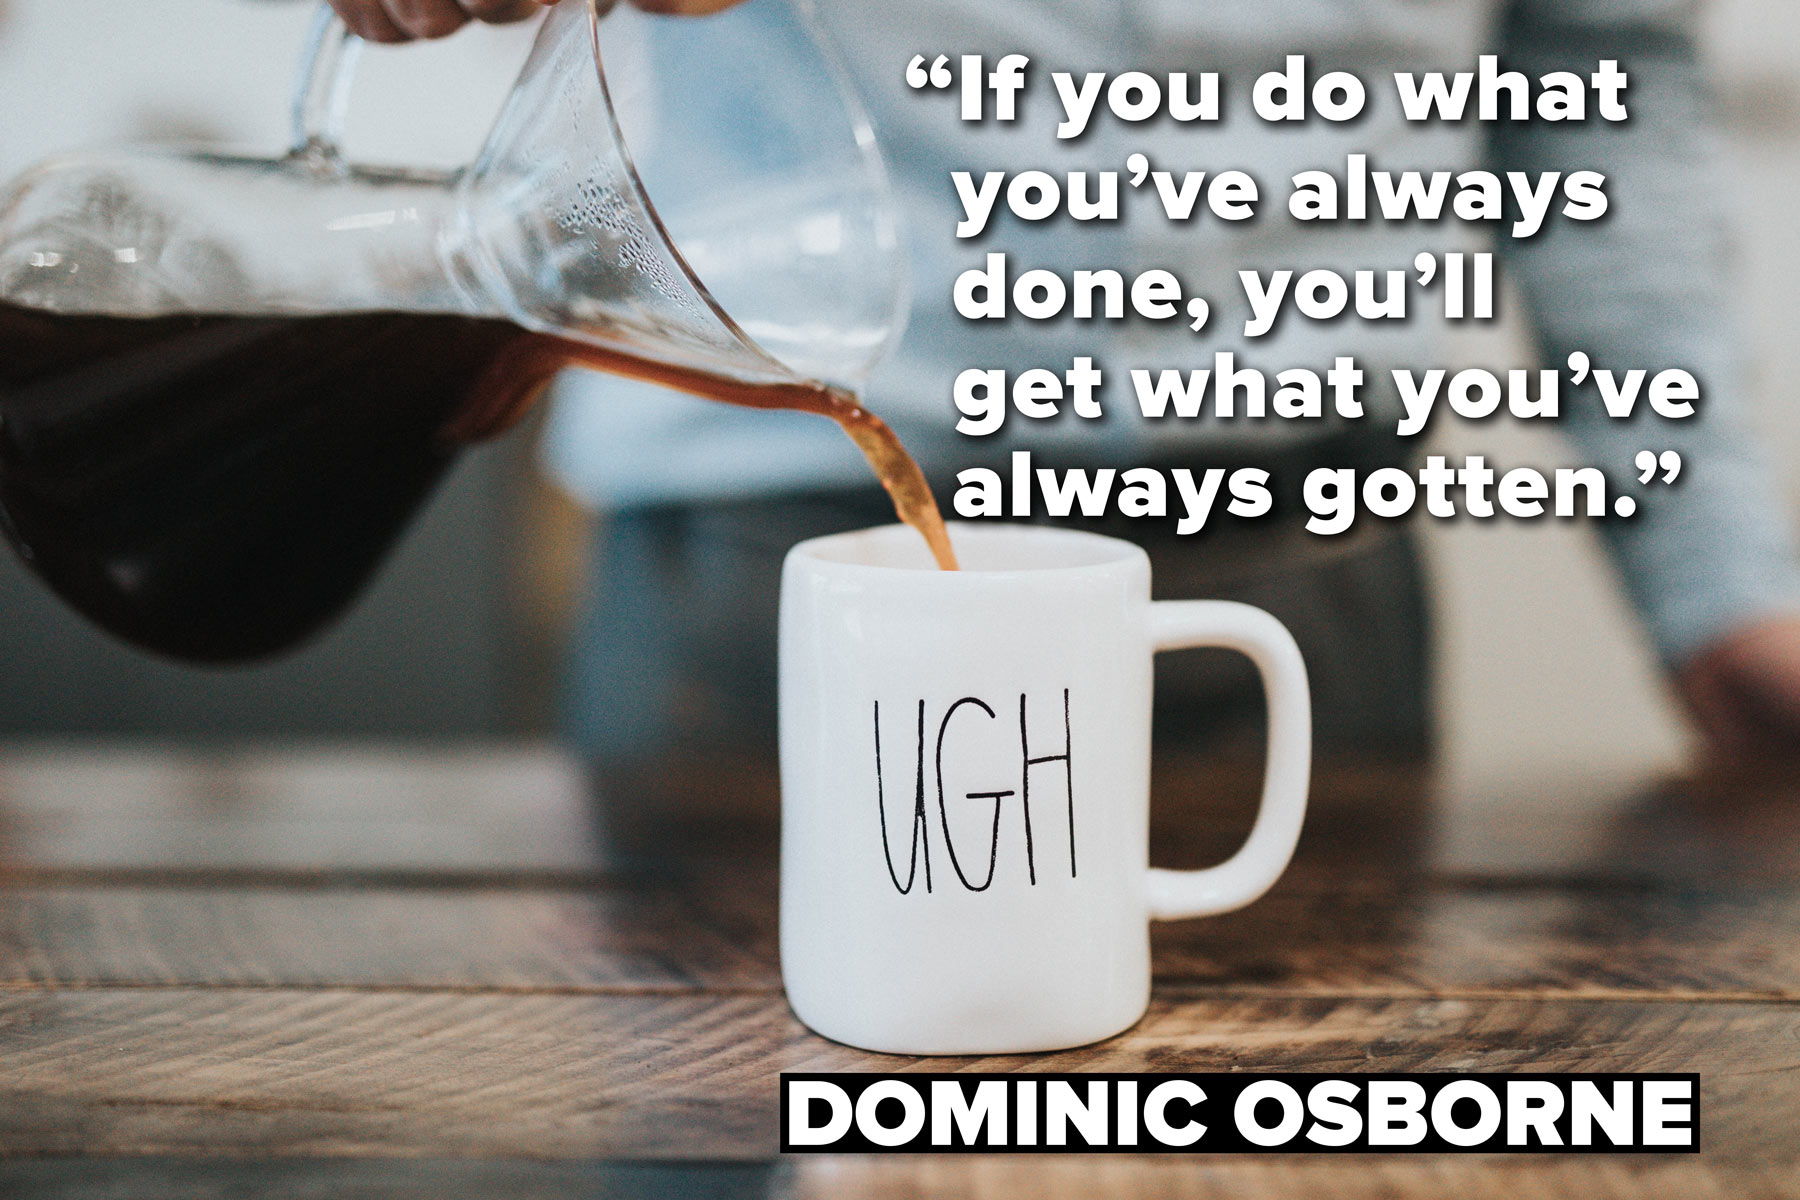 If you do what you've always done, you'll get what you've always gotten. - Dominic Osborne